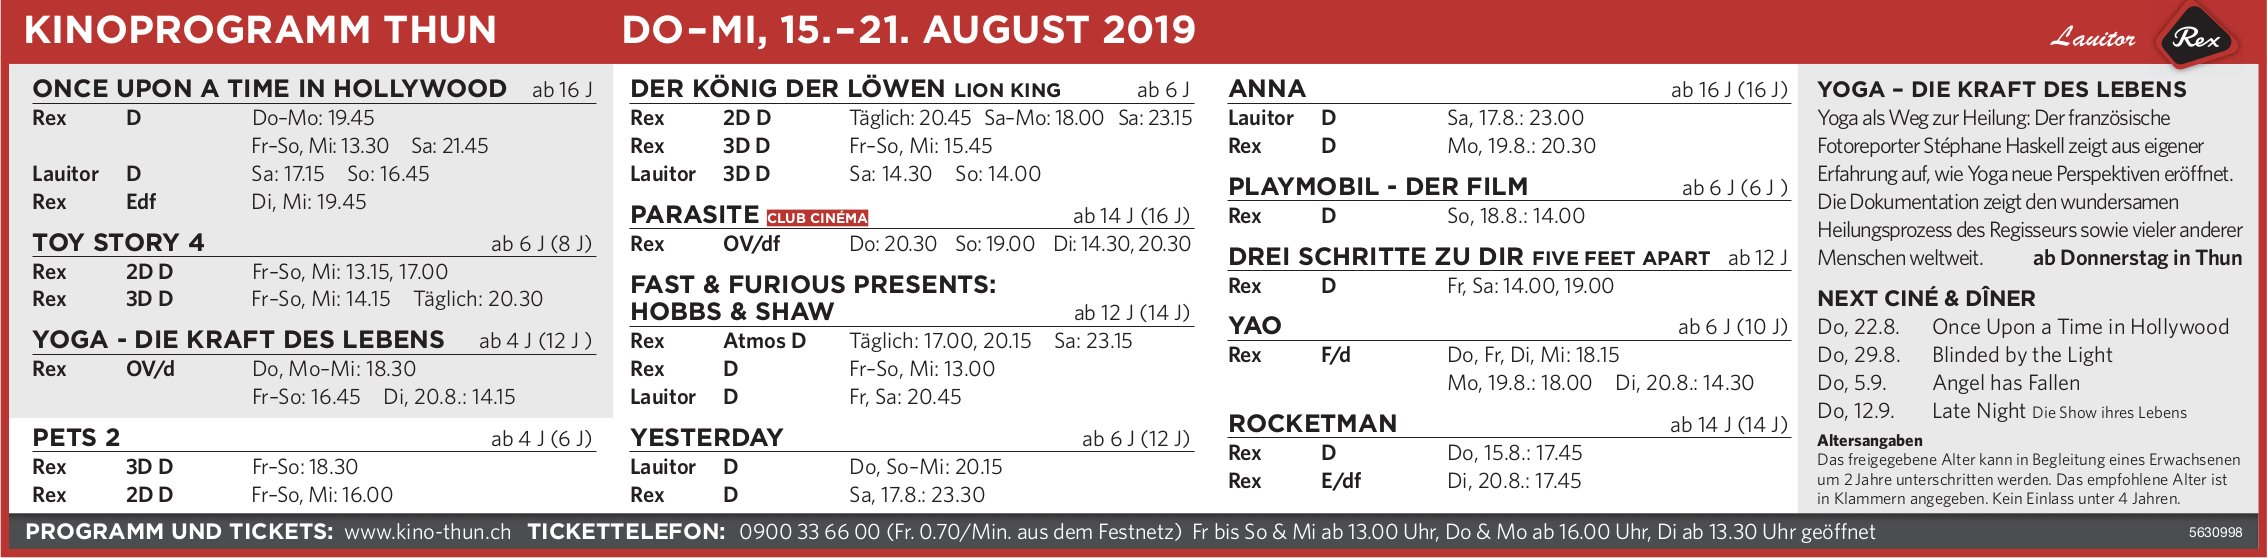 KINOPROGRAMM THUN, DO–MI, 15.–21. AUGUST